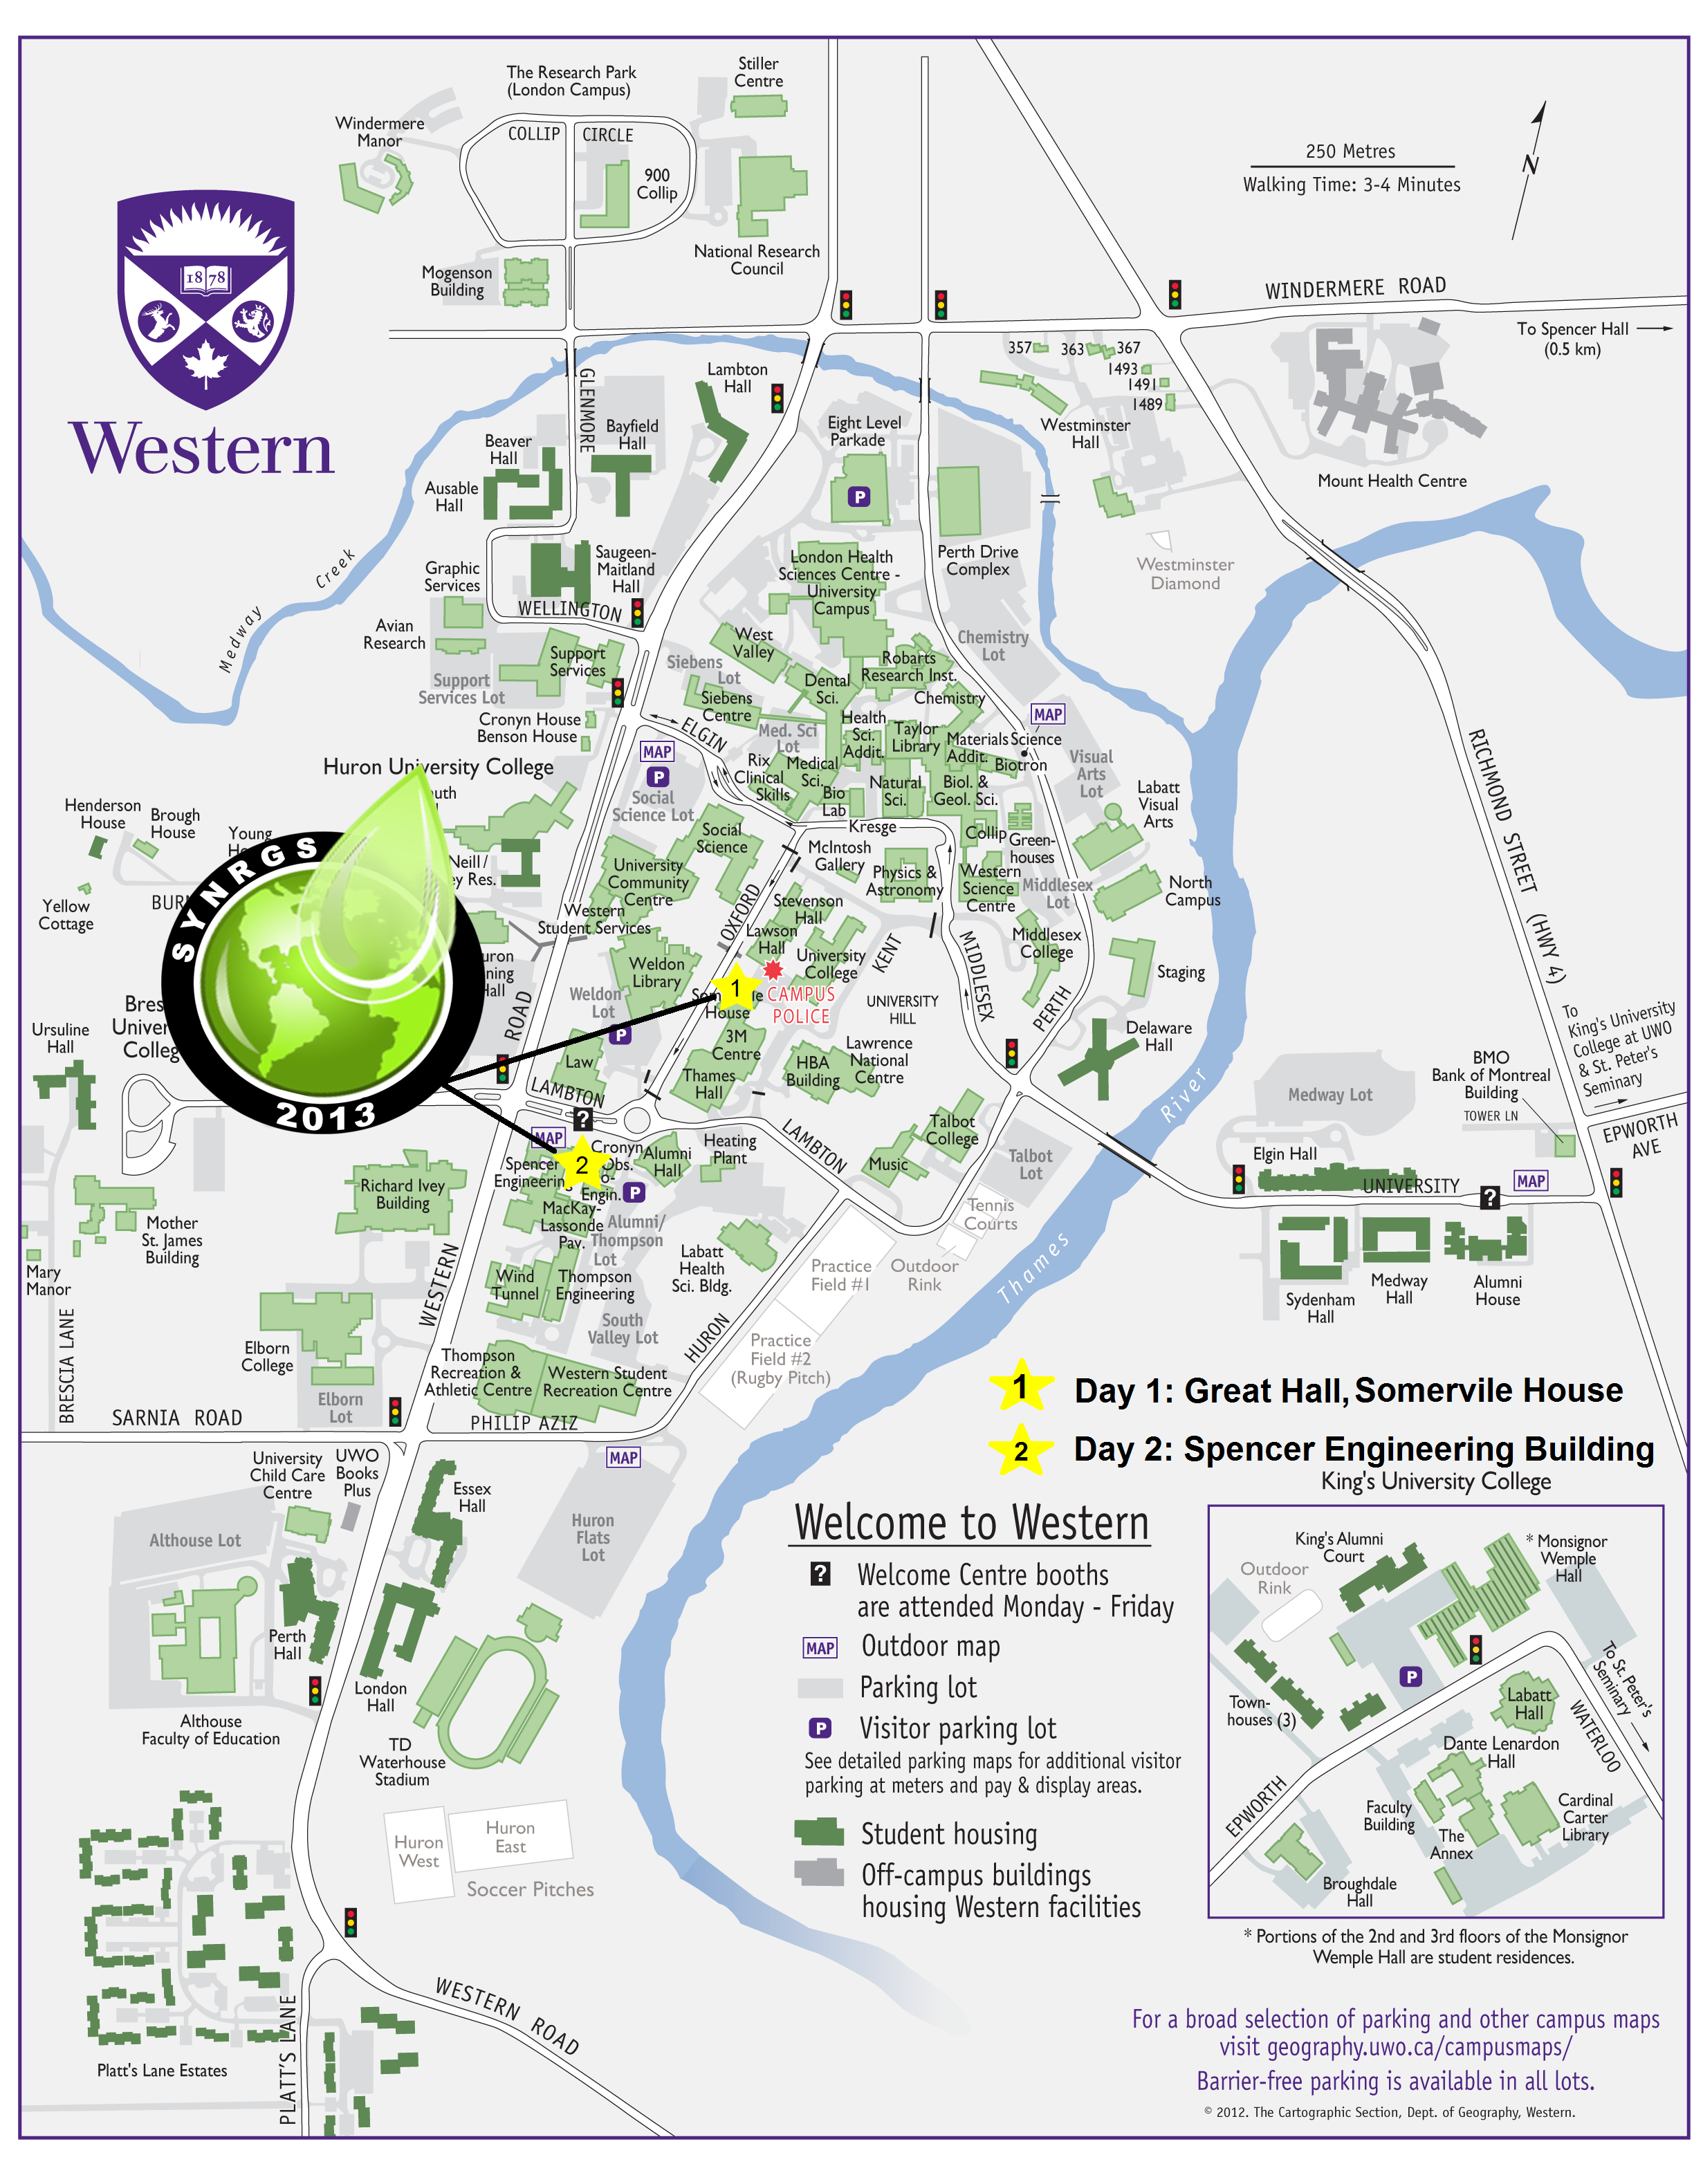 university of western ontario campus map Synrgs university of western ontario campus map